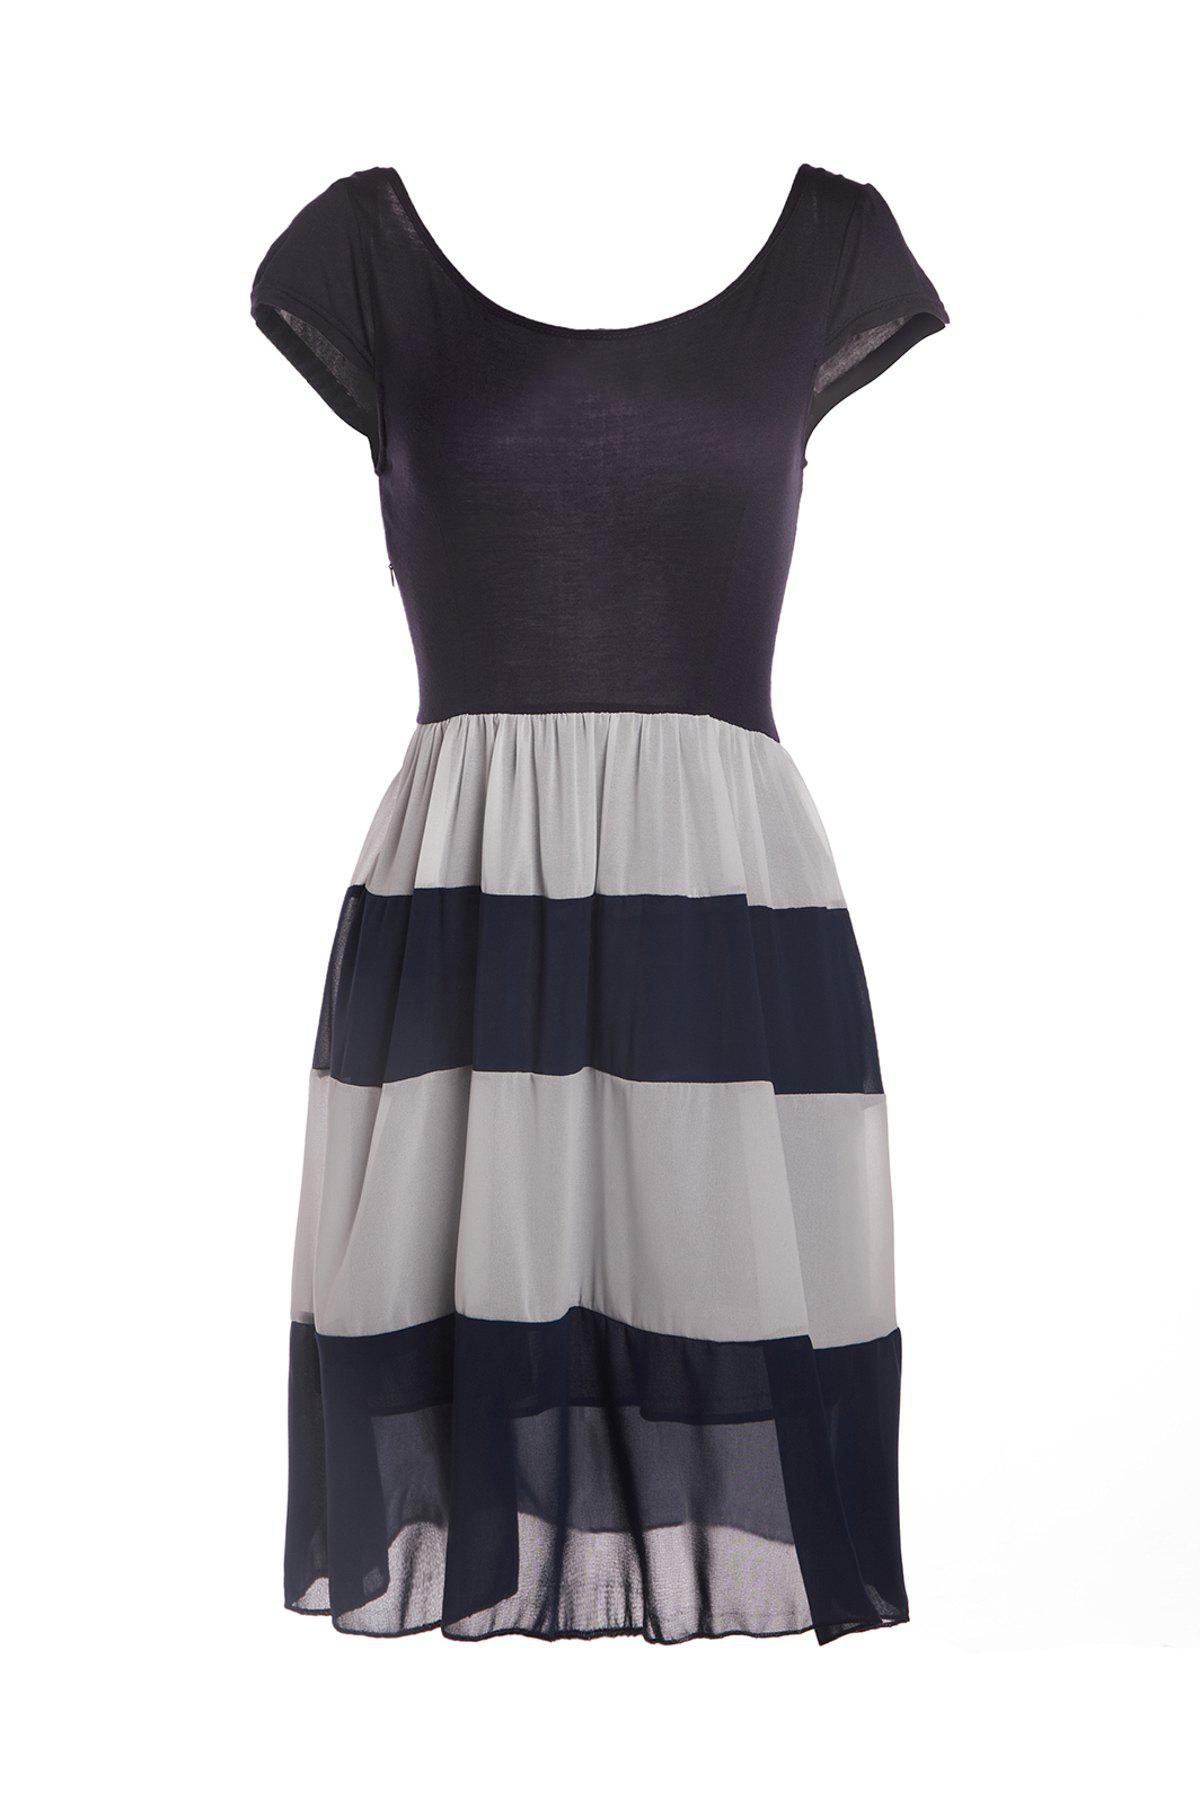 Fashionable Scoop Neck Chiffon Splicing Striped Short Sleeve Dress For WomenWomen<br><br><br>Size: L<br>Color: CADETBLUE